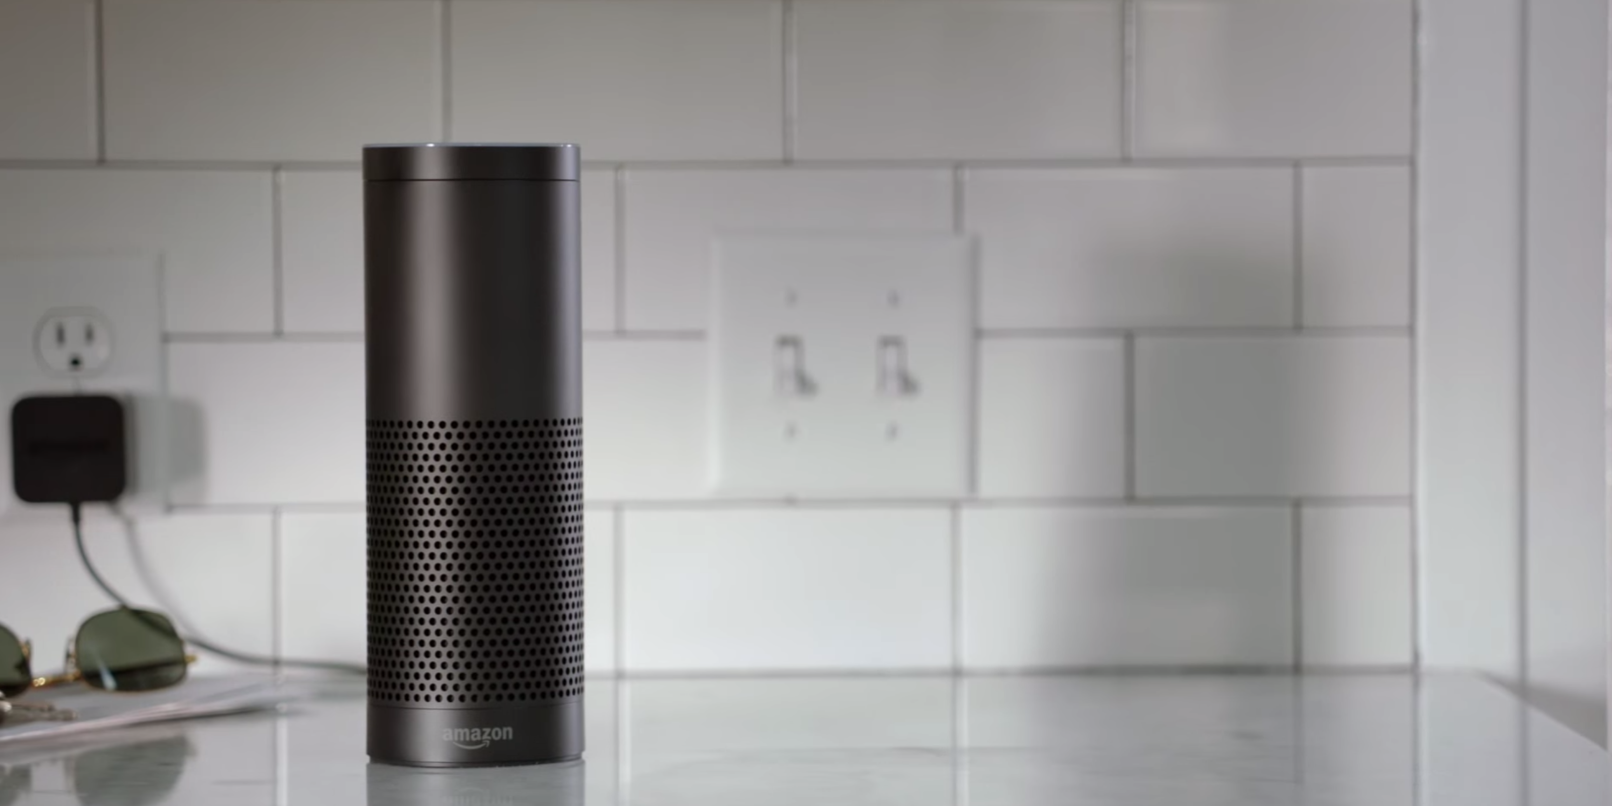 Forget Amazon Echo, 'the creepy factor' has put me off voice control completely